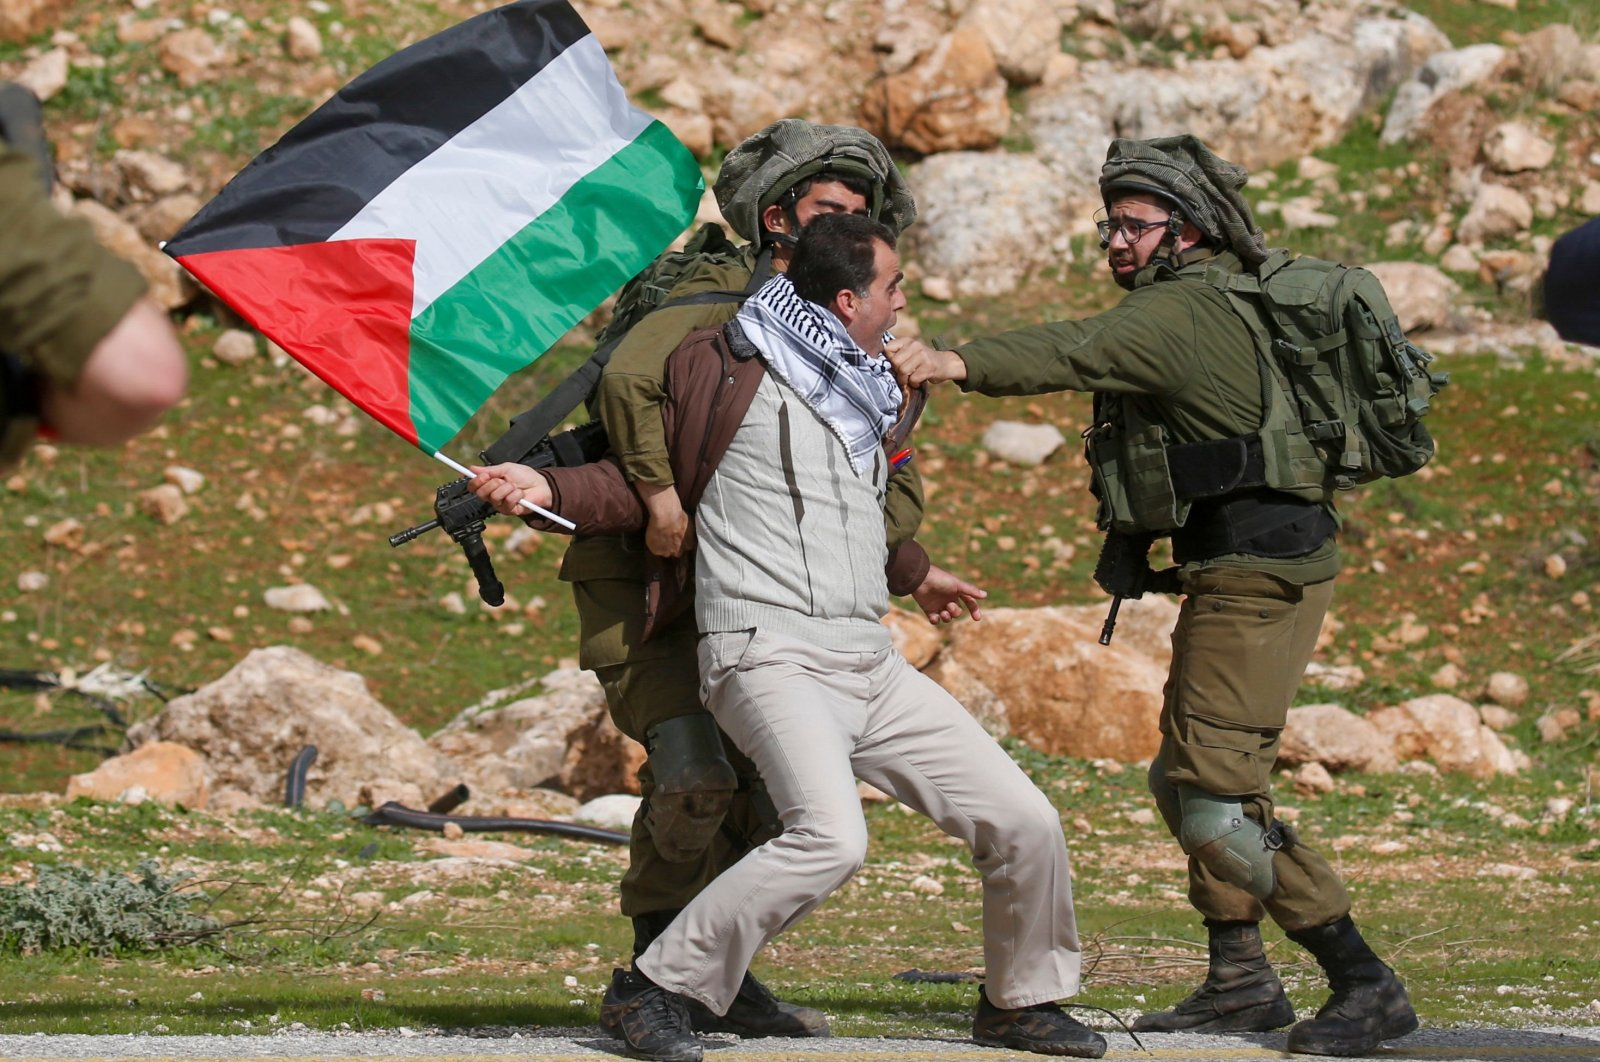 A Palestinian demonstrator is detained by Israeli soldiers during a demonstration near the West Bank village of Tubas, near the Jordan Valley, on Jan. 29, 2020. (AFP Photo)